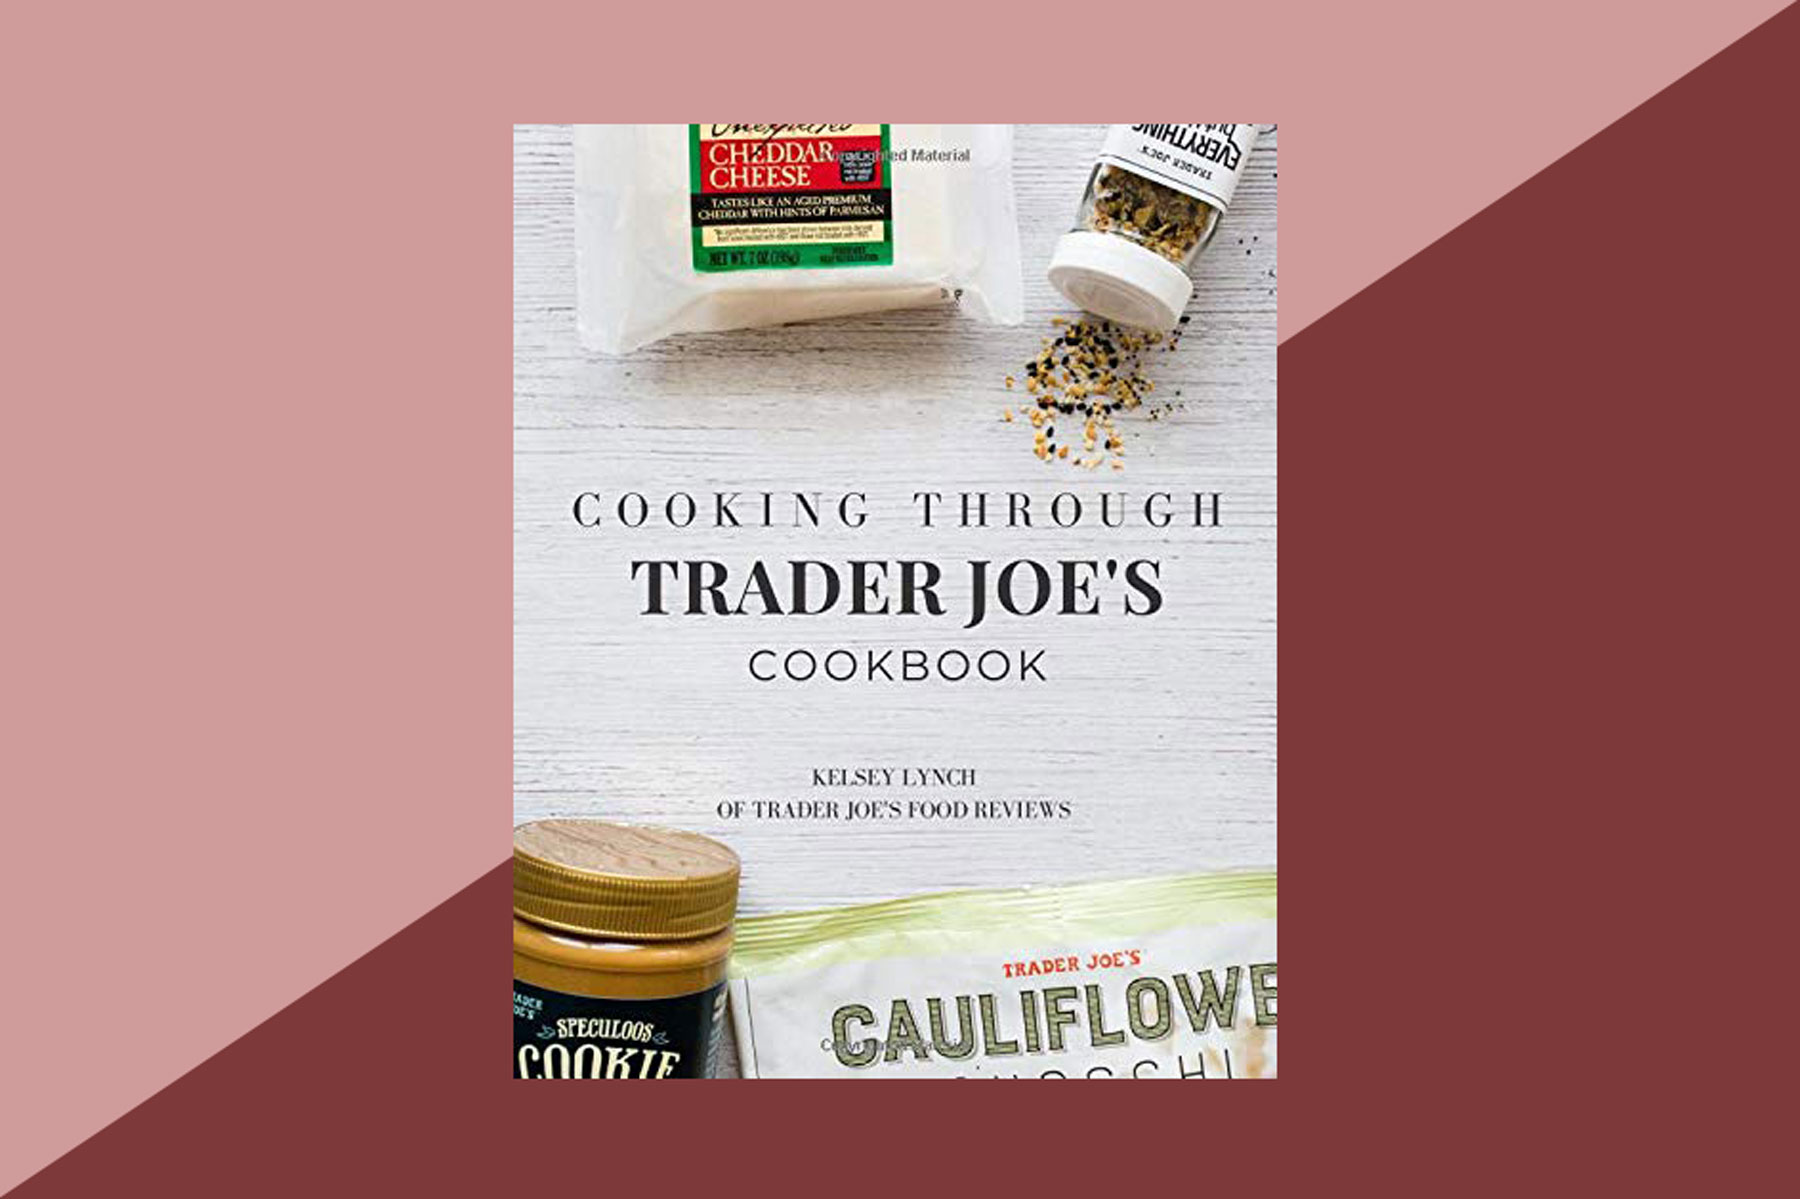 Cooking Through Trader Joe's Cookbook cover